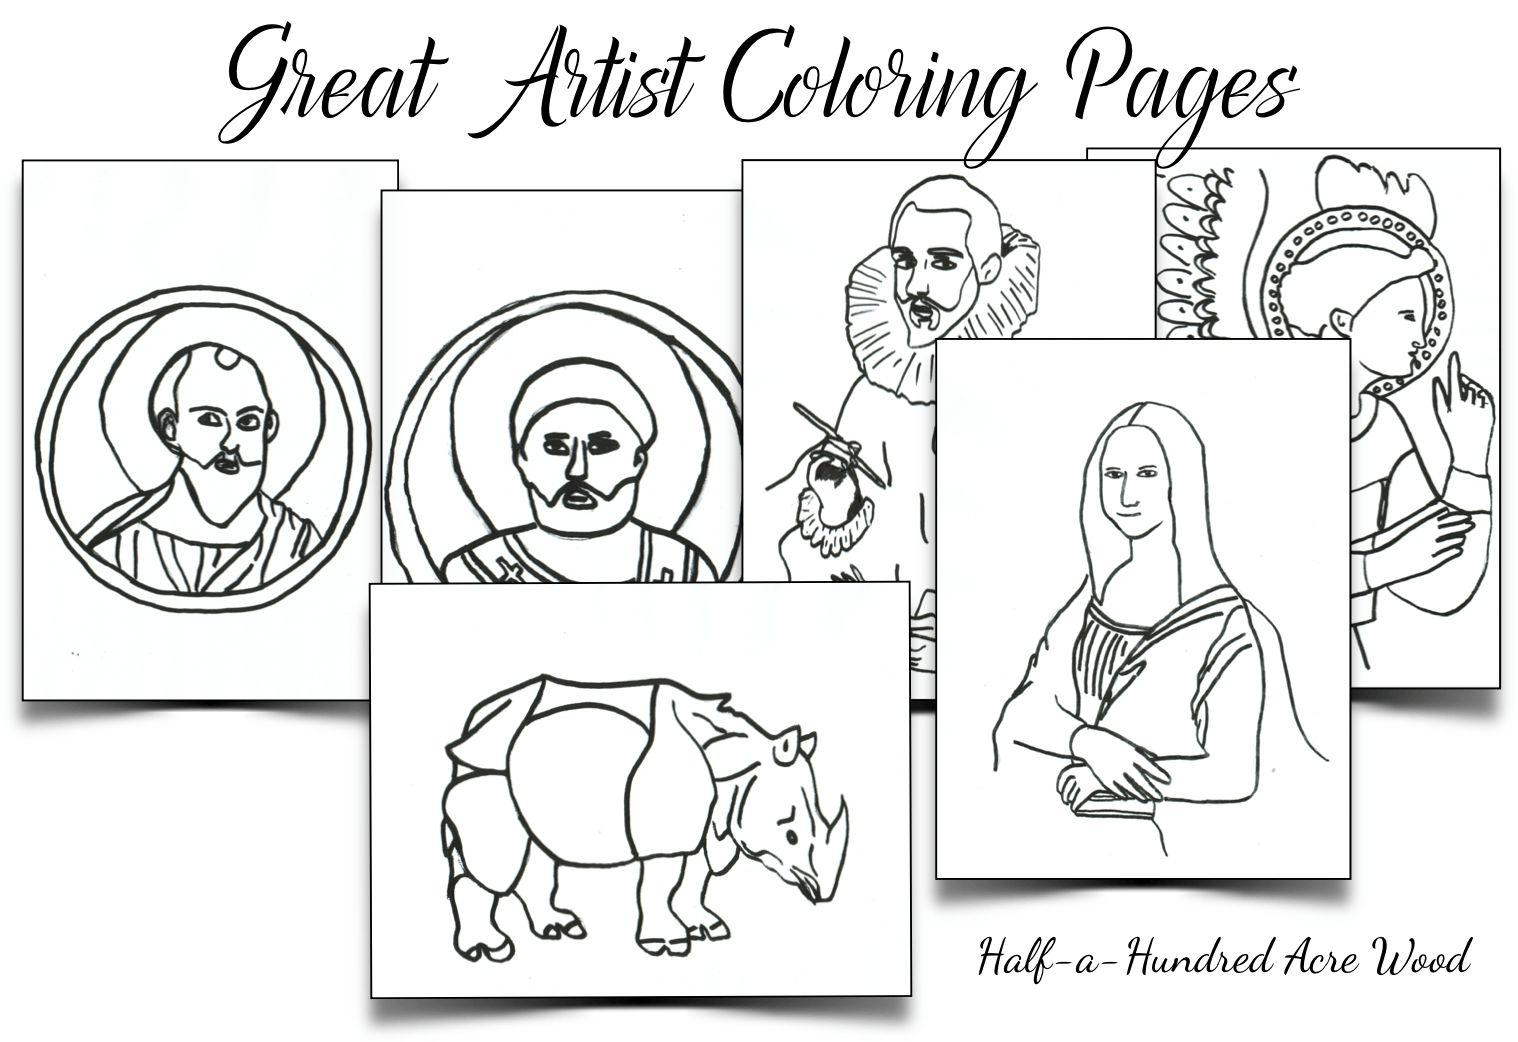 Great Artist Coloring Pages